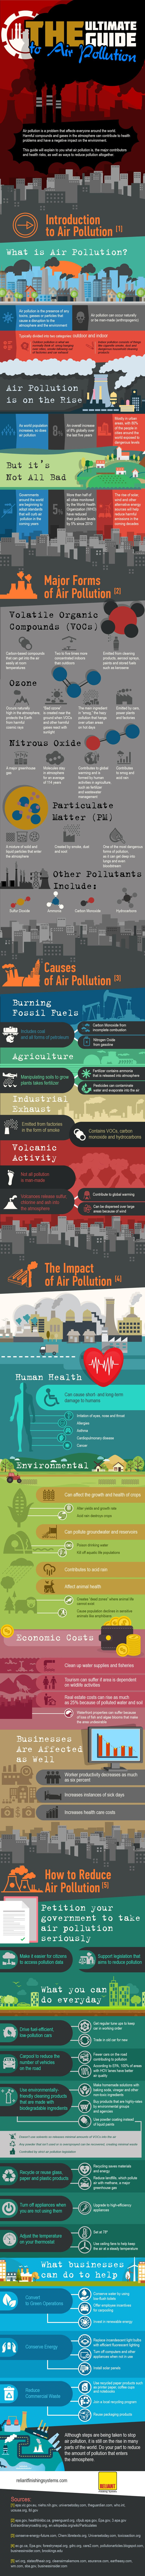 The Ultimate Guide to Air Pollution